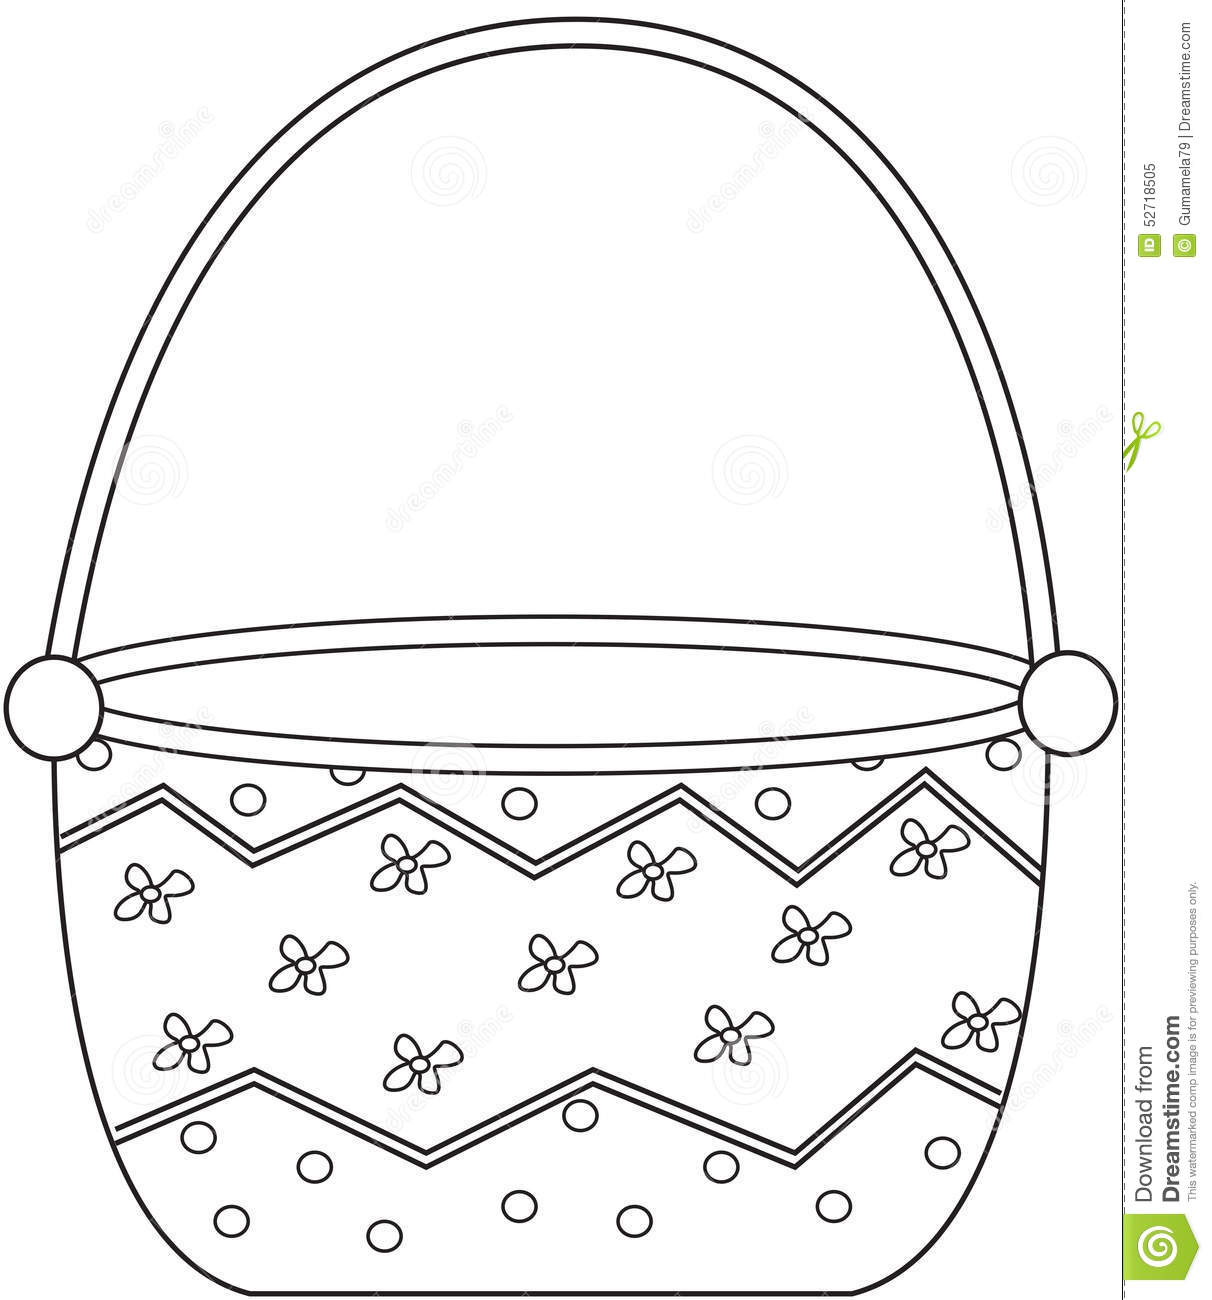 Empty Basket Coloring Page. Basket clipart vegitable - Pencil and in ...